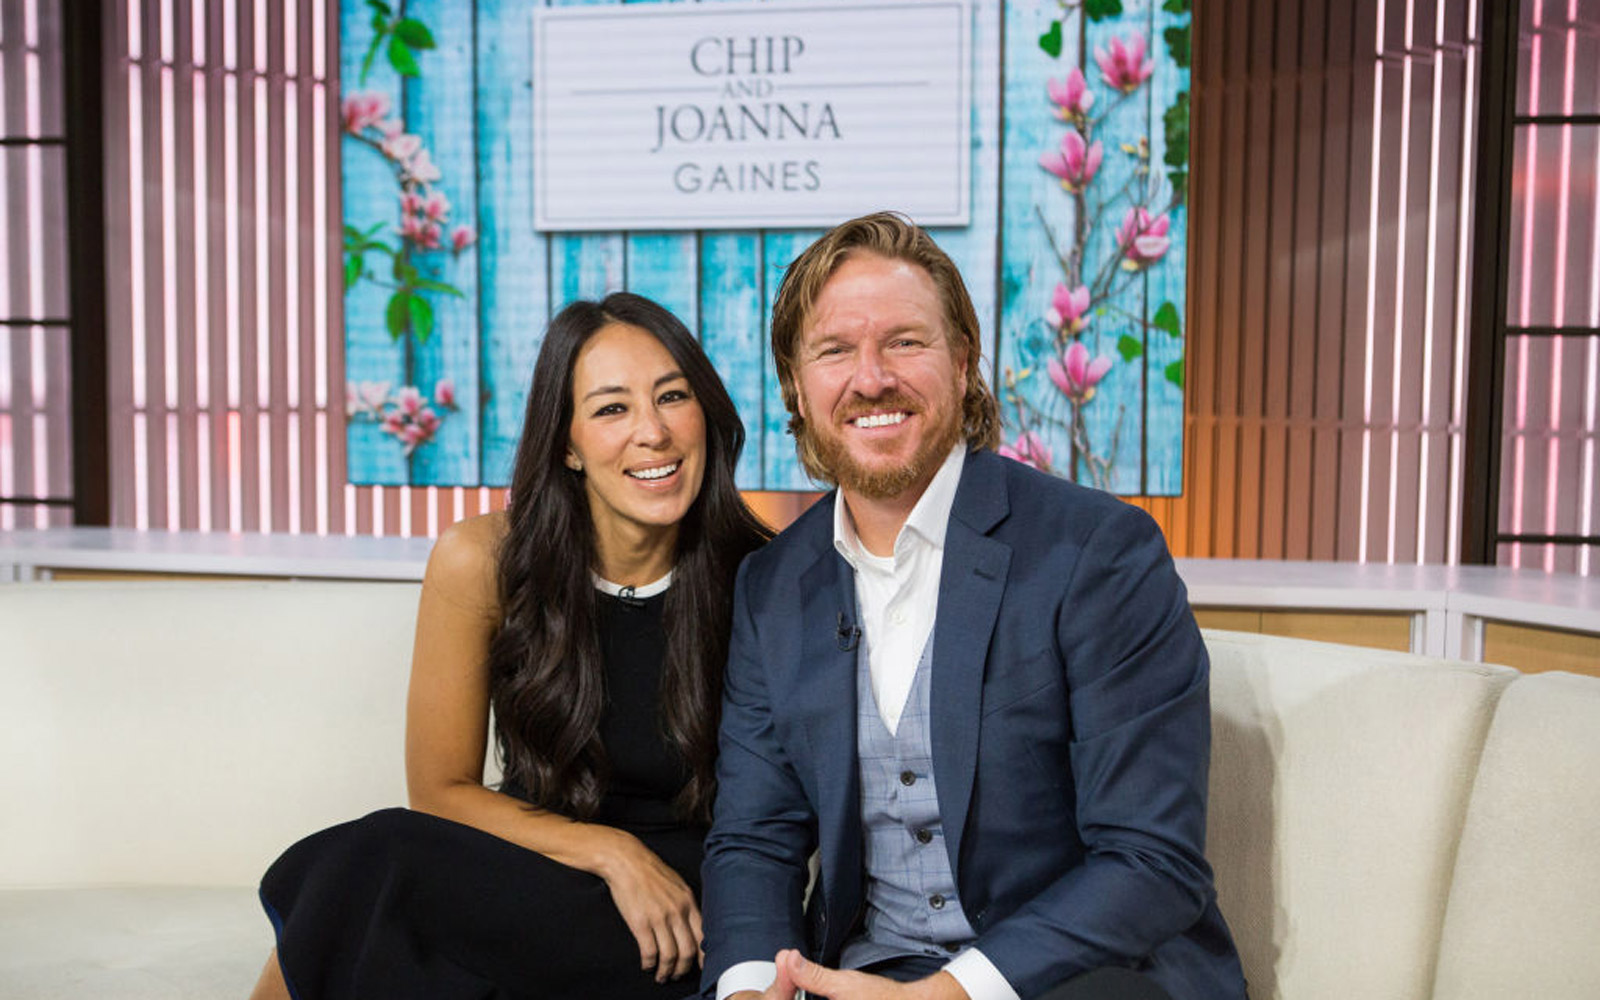 The Best Items Under $25 From Chip and Joanna Gaines's New Target Line